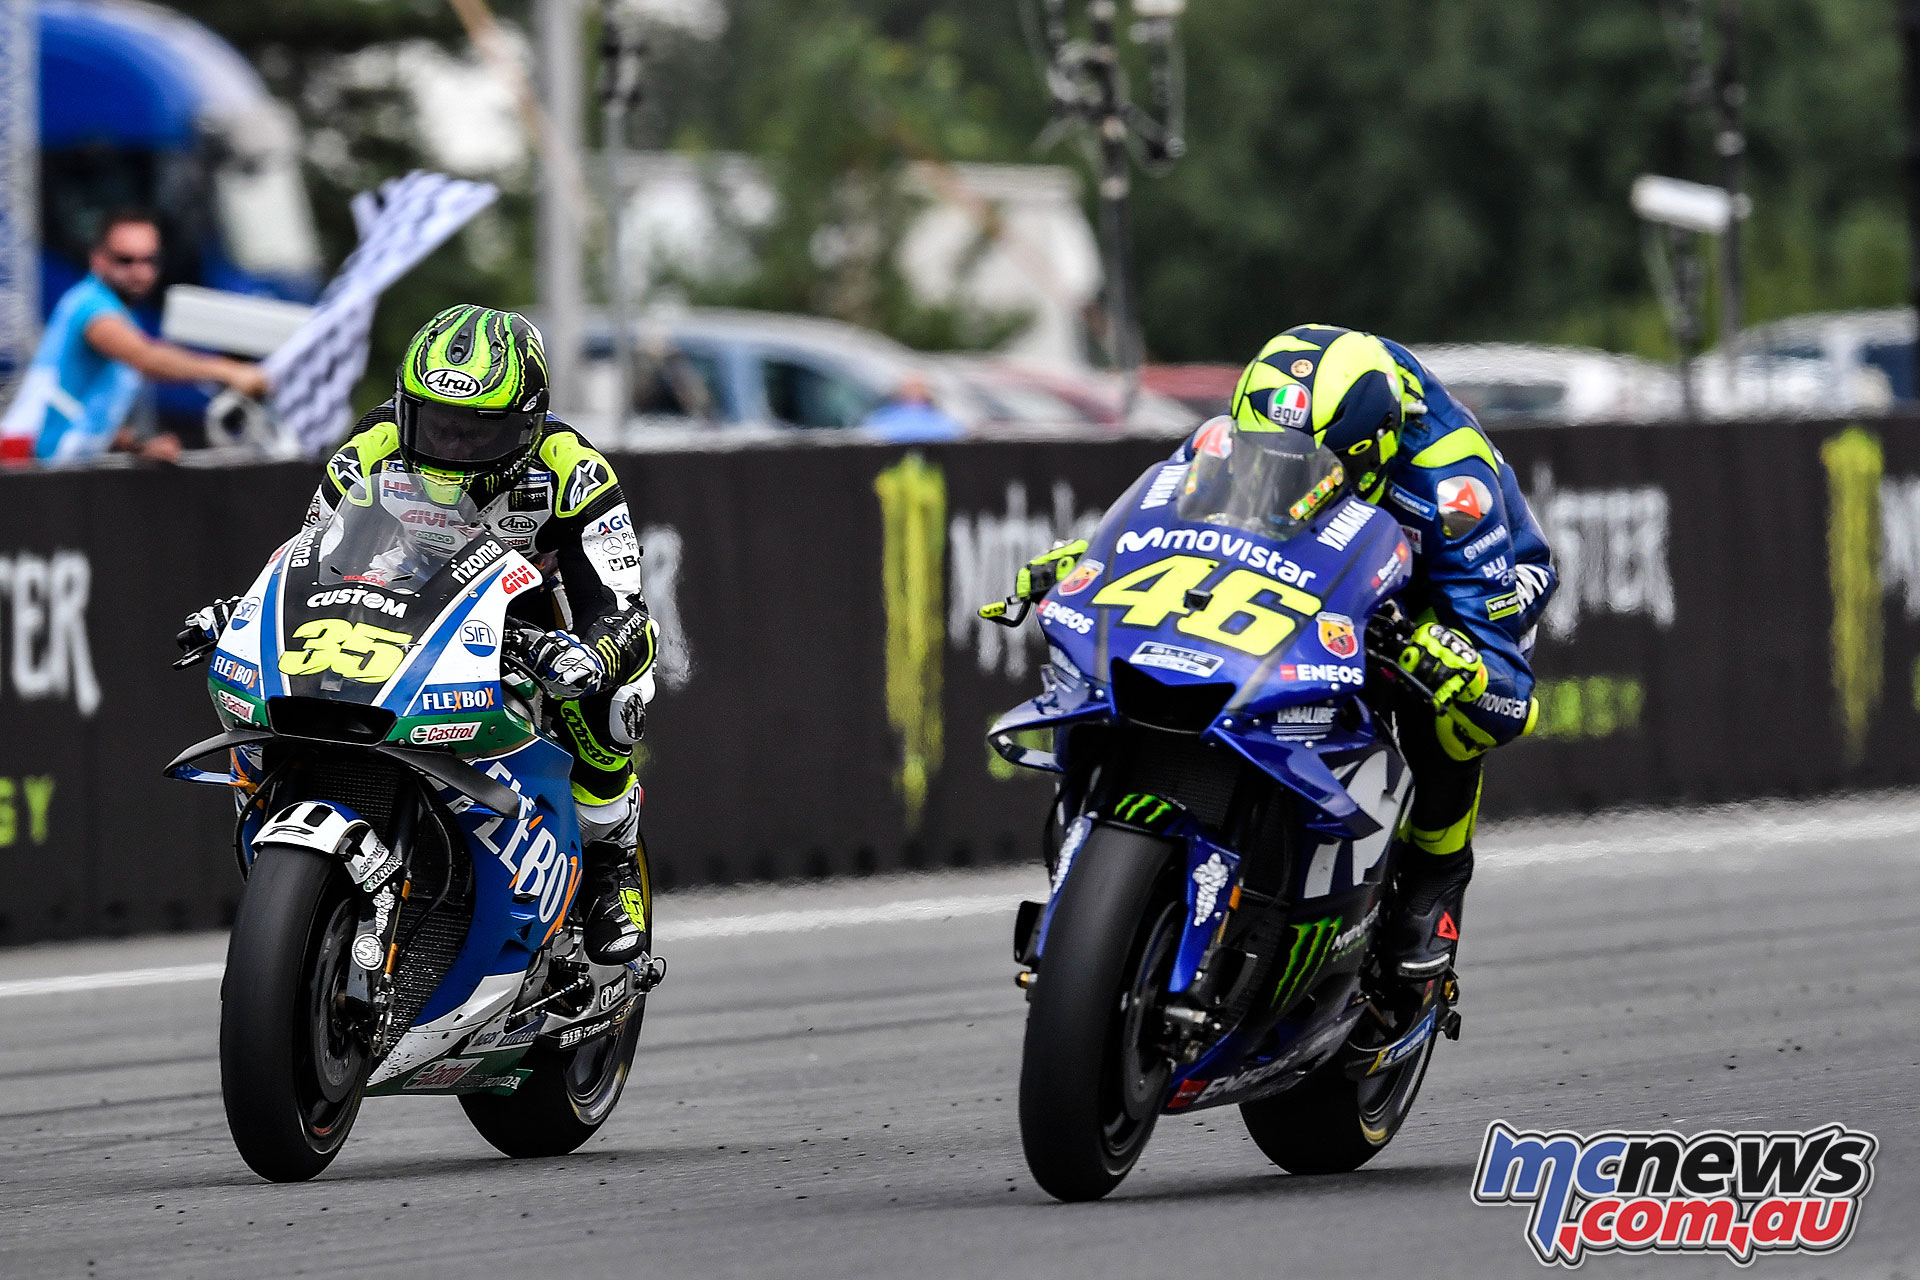 Crutchlow and Rossi battled for fourth